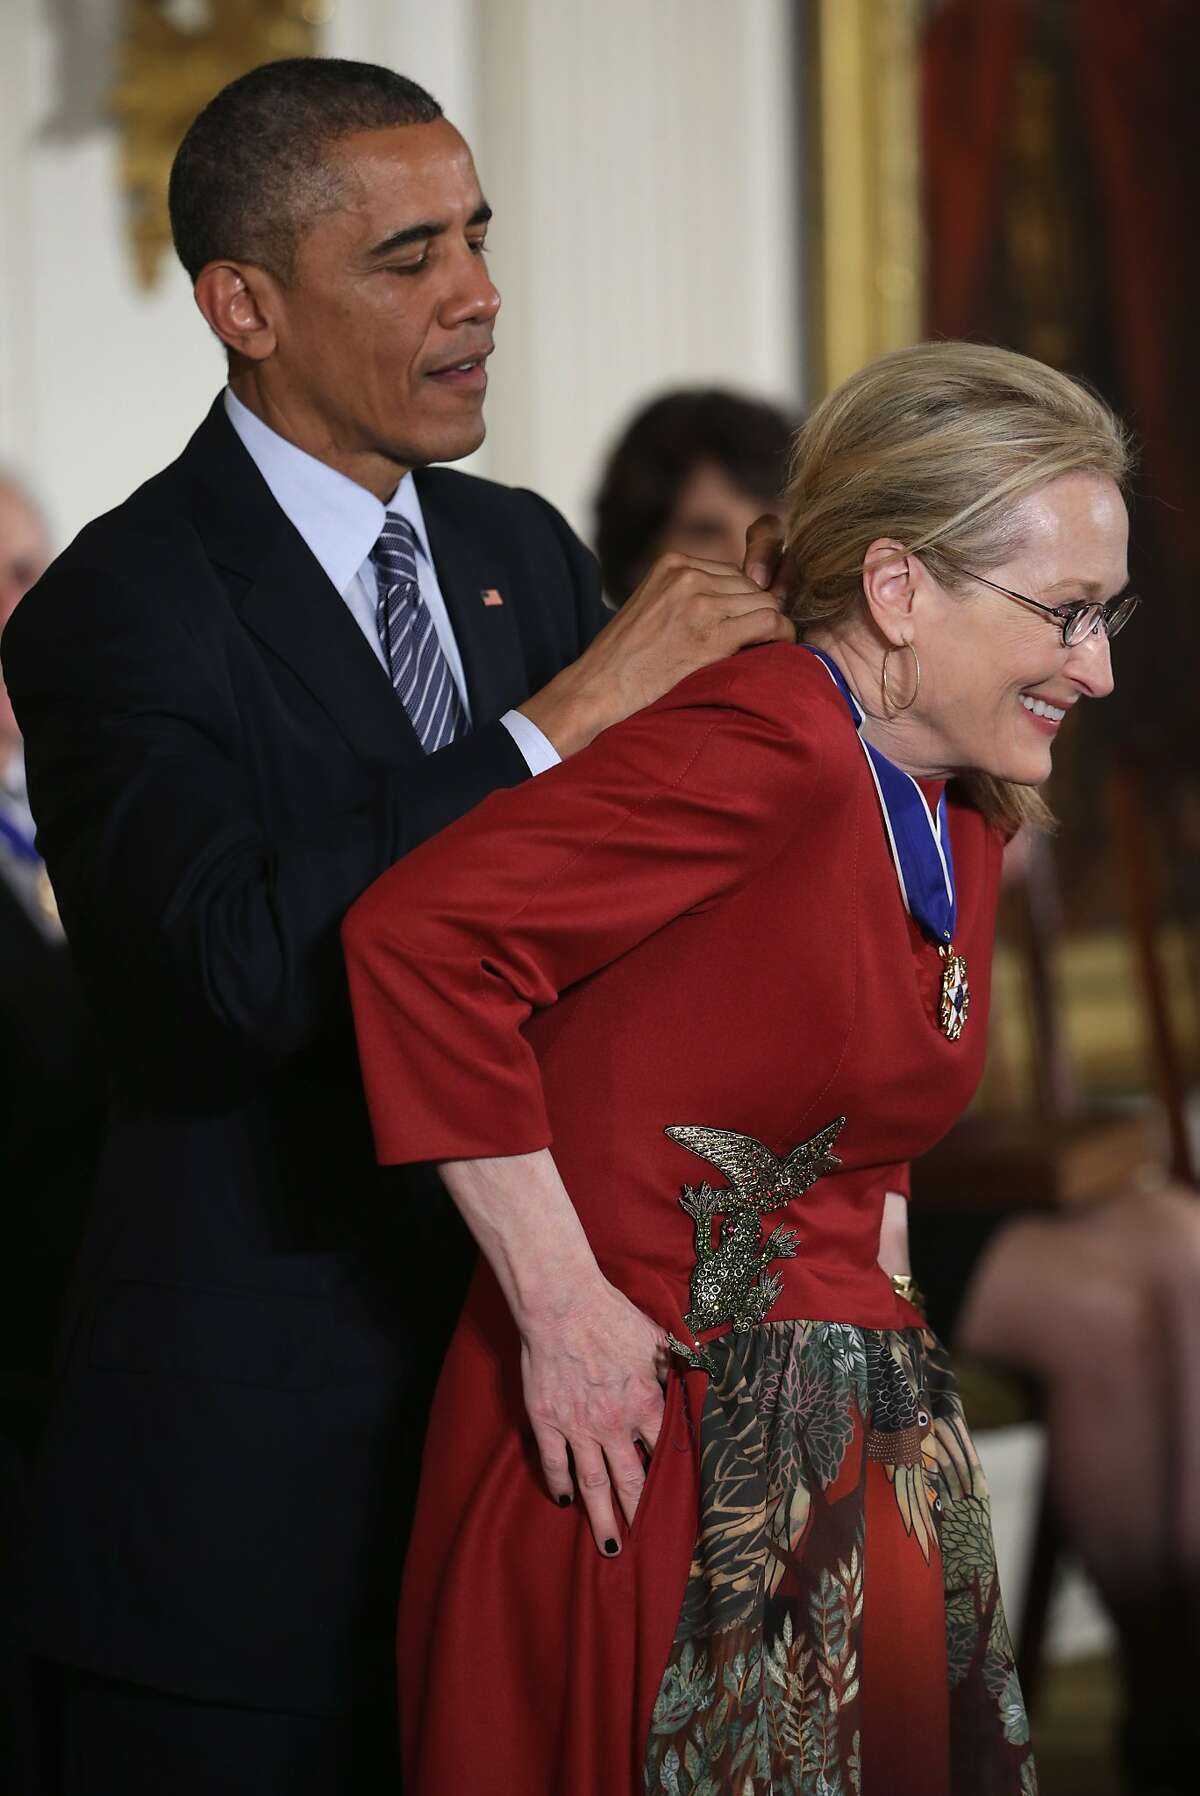 ROLE MODEL: President Obama places the Presidential Medal of Freedom on actress Meryl Streep during an East Room ceremony at the White House. The Presidential Medal of Freedom is the nation's highest civilian honor.